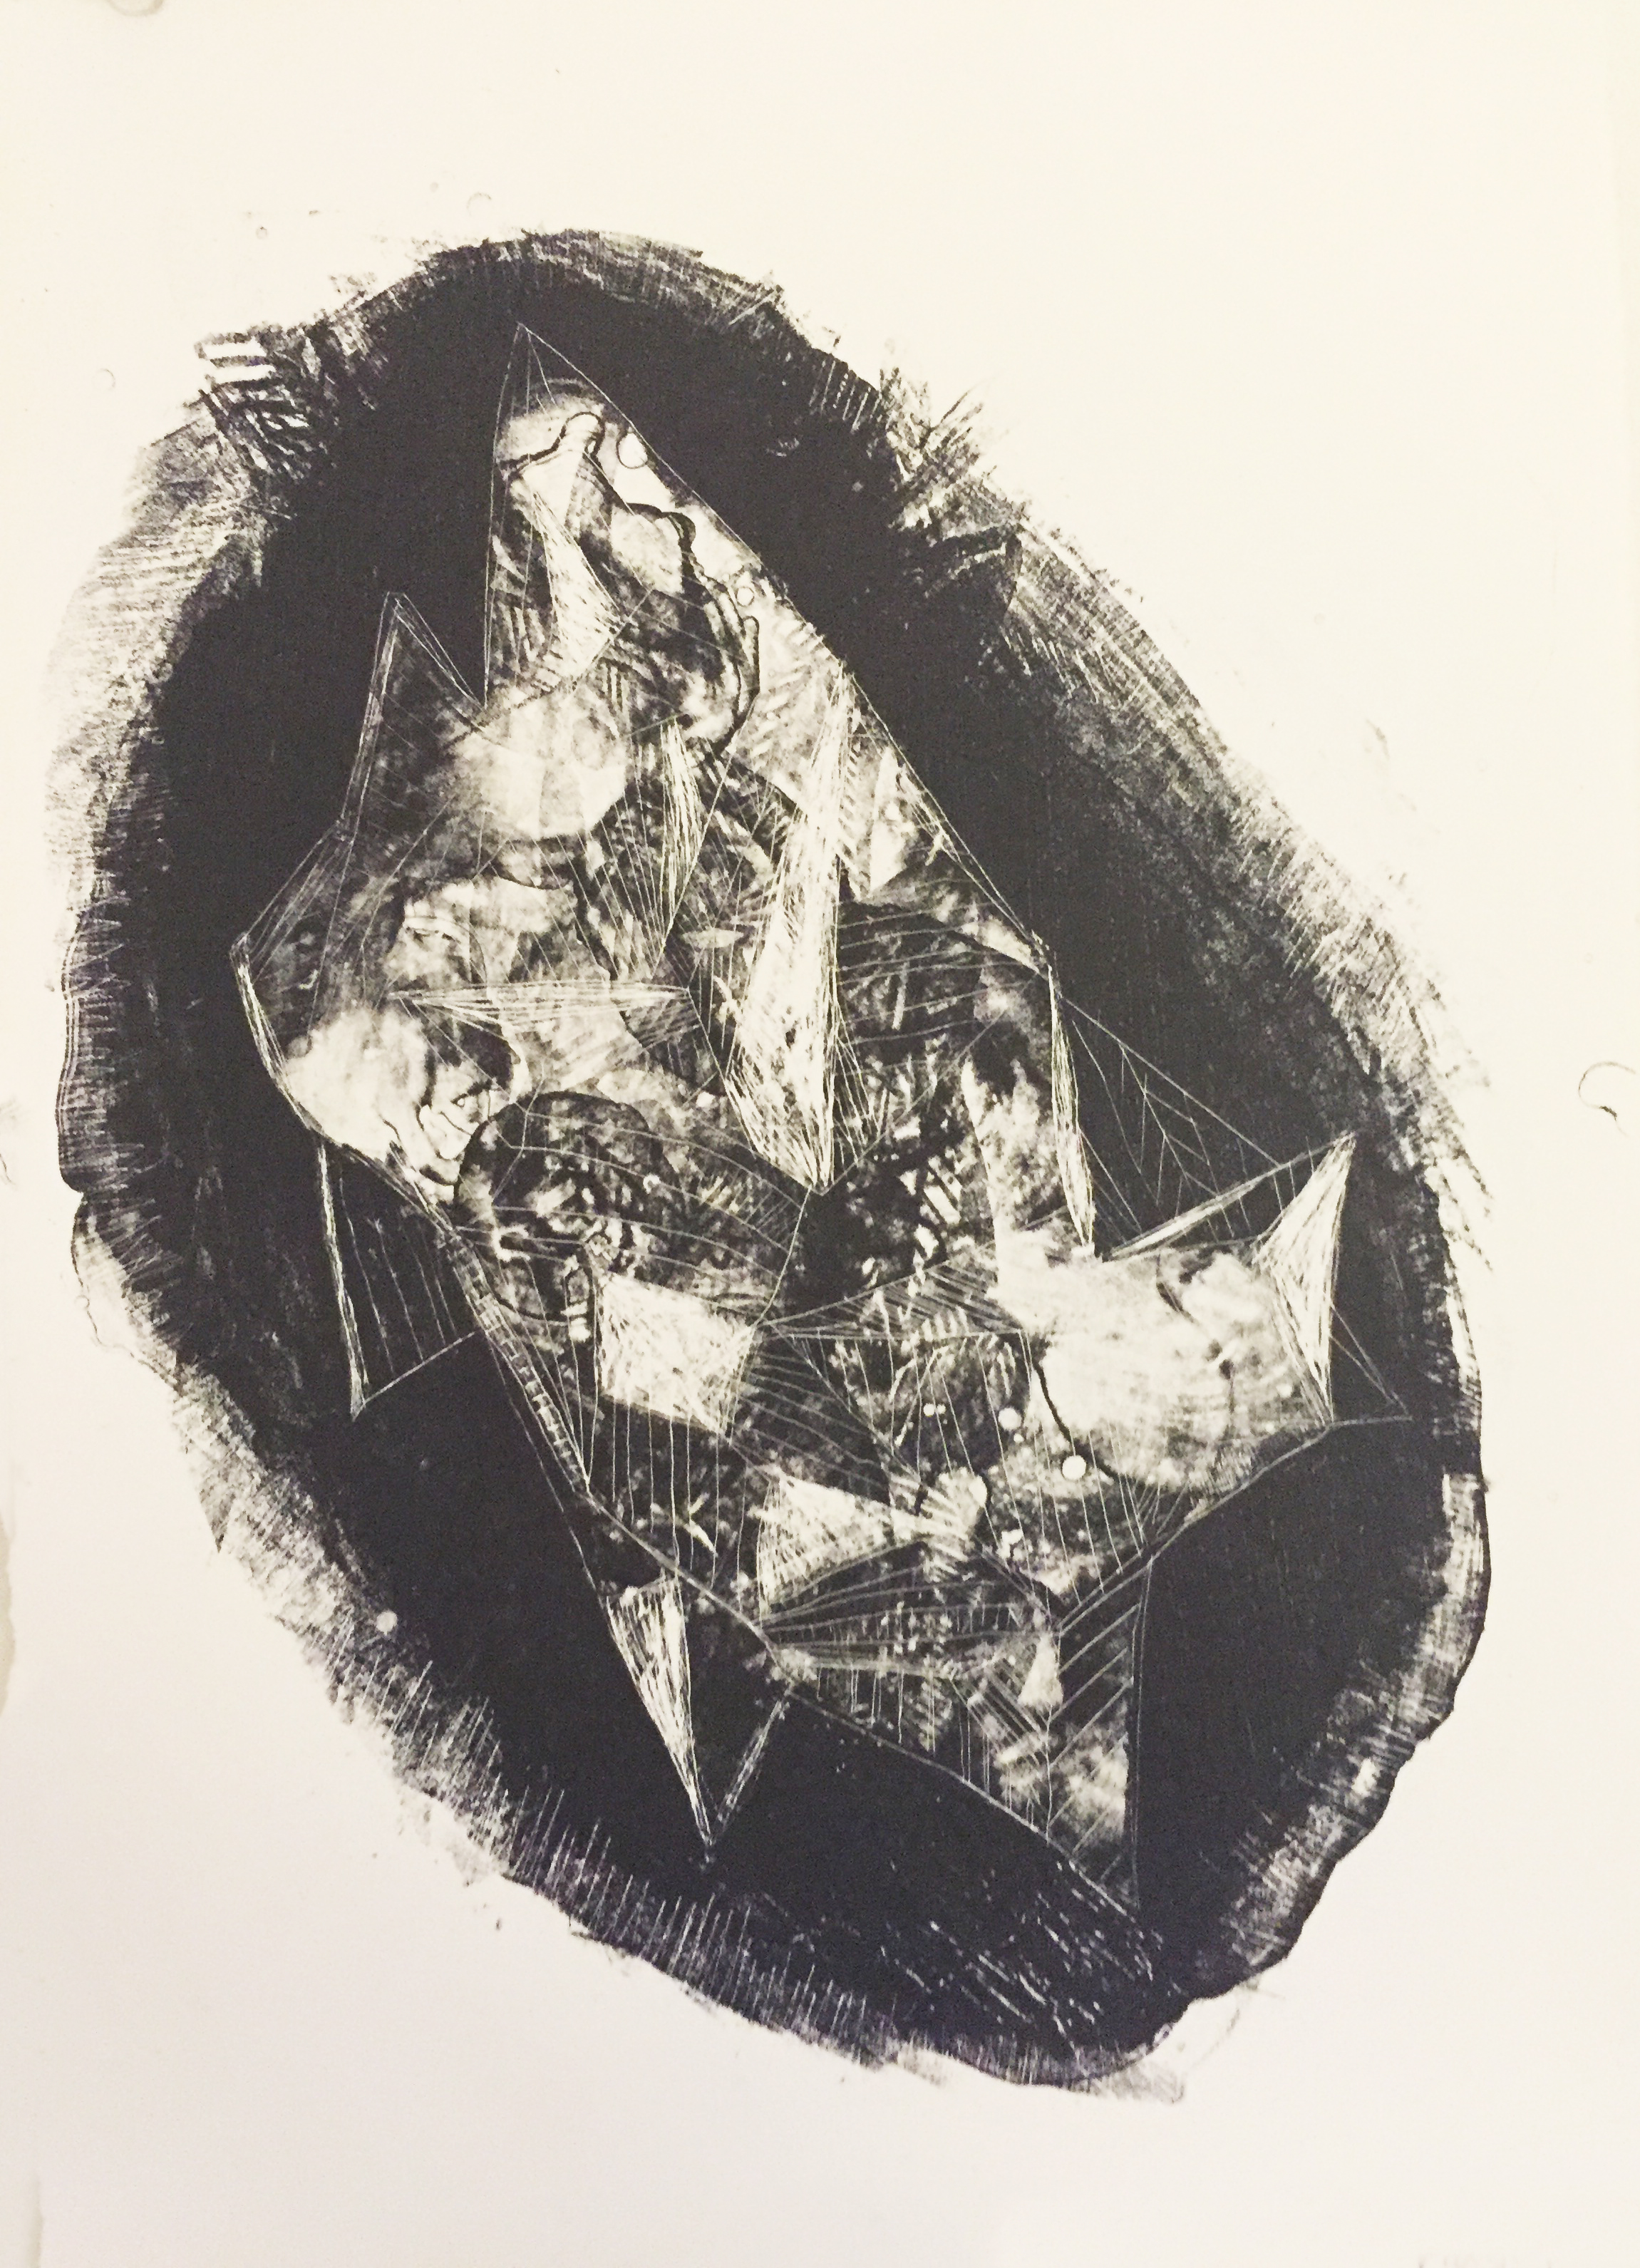 This is an abstract image I created on a lithography stone.